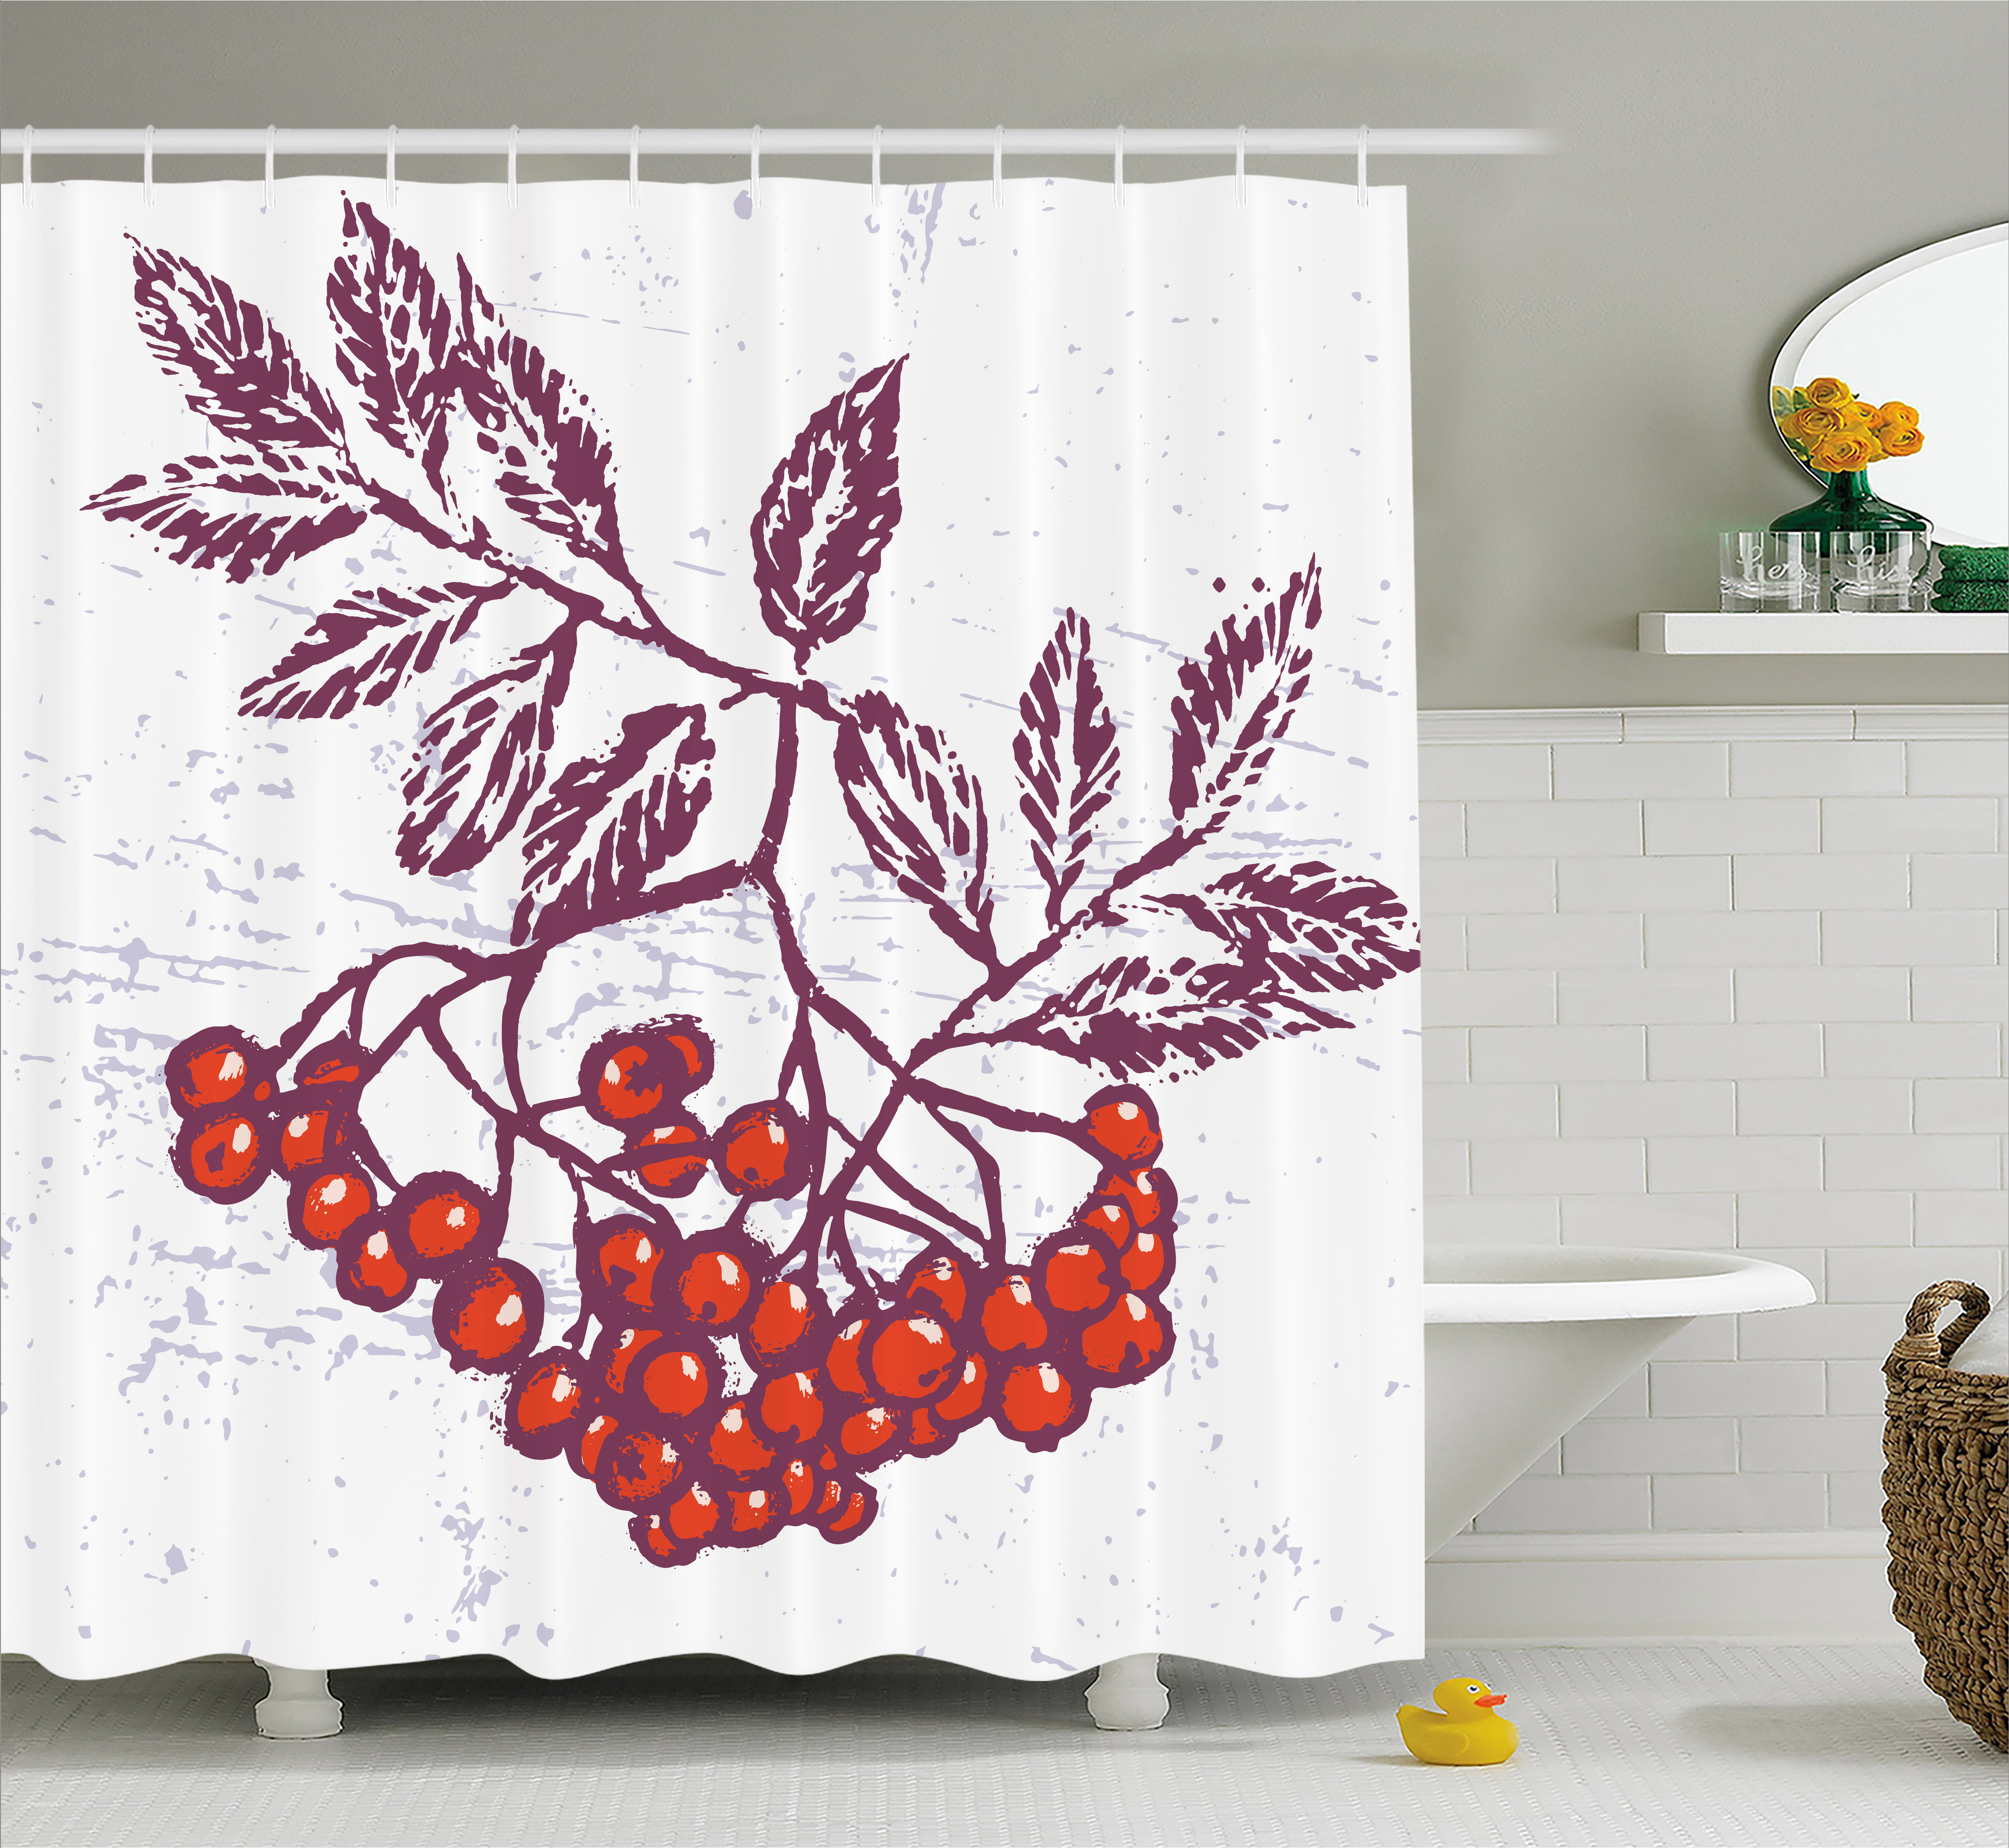 Rowan Shower Curtain Artistic Berry Bunch Hand Drawn Seasonal Fruit Natural Organic Food Theme Fabric Bathroom Set With Hooks Purple Orange White